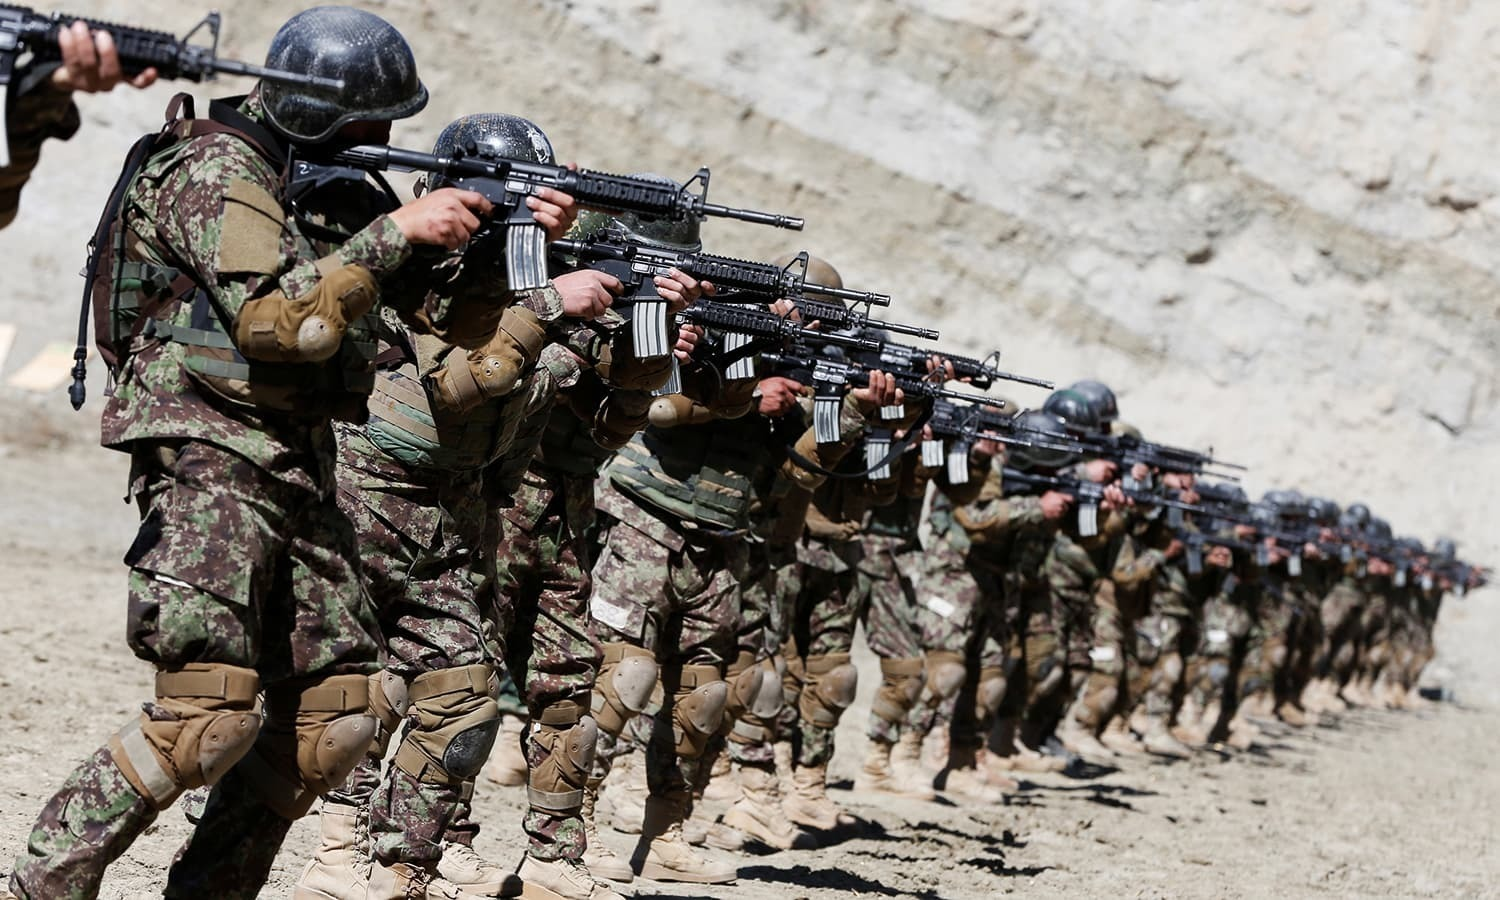 In this file photo, new recruits to the Afghan army Special Forces take part in a military exercise in Rishkhur district outside Kabul. — Reuters/File